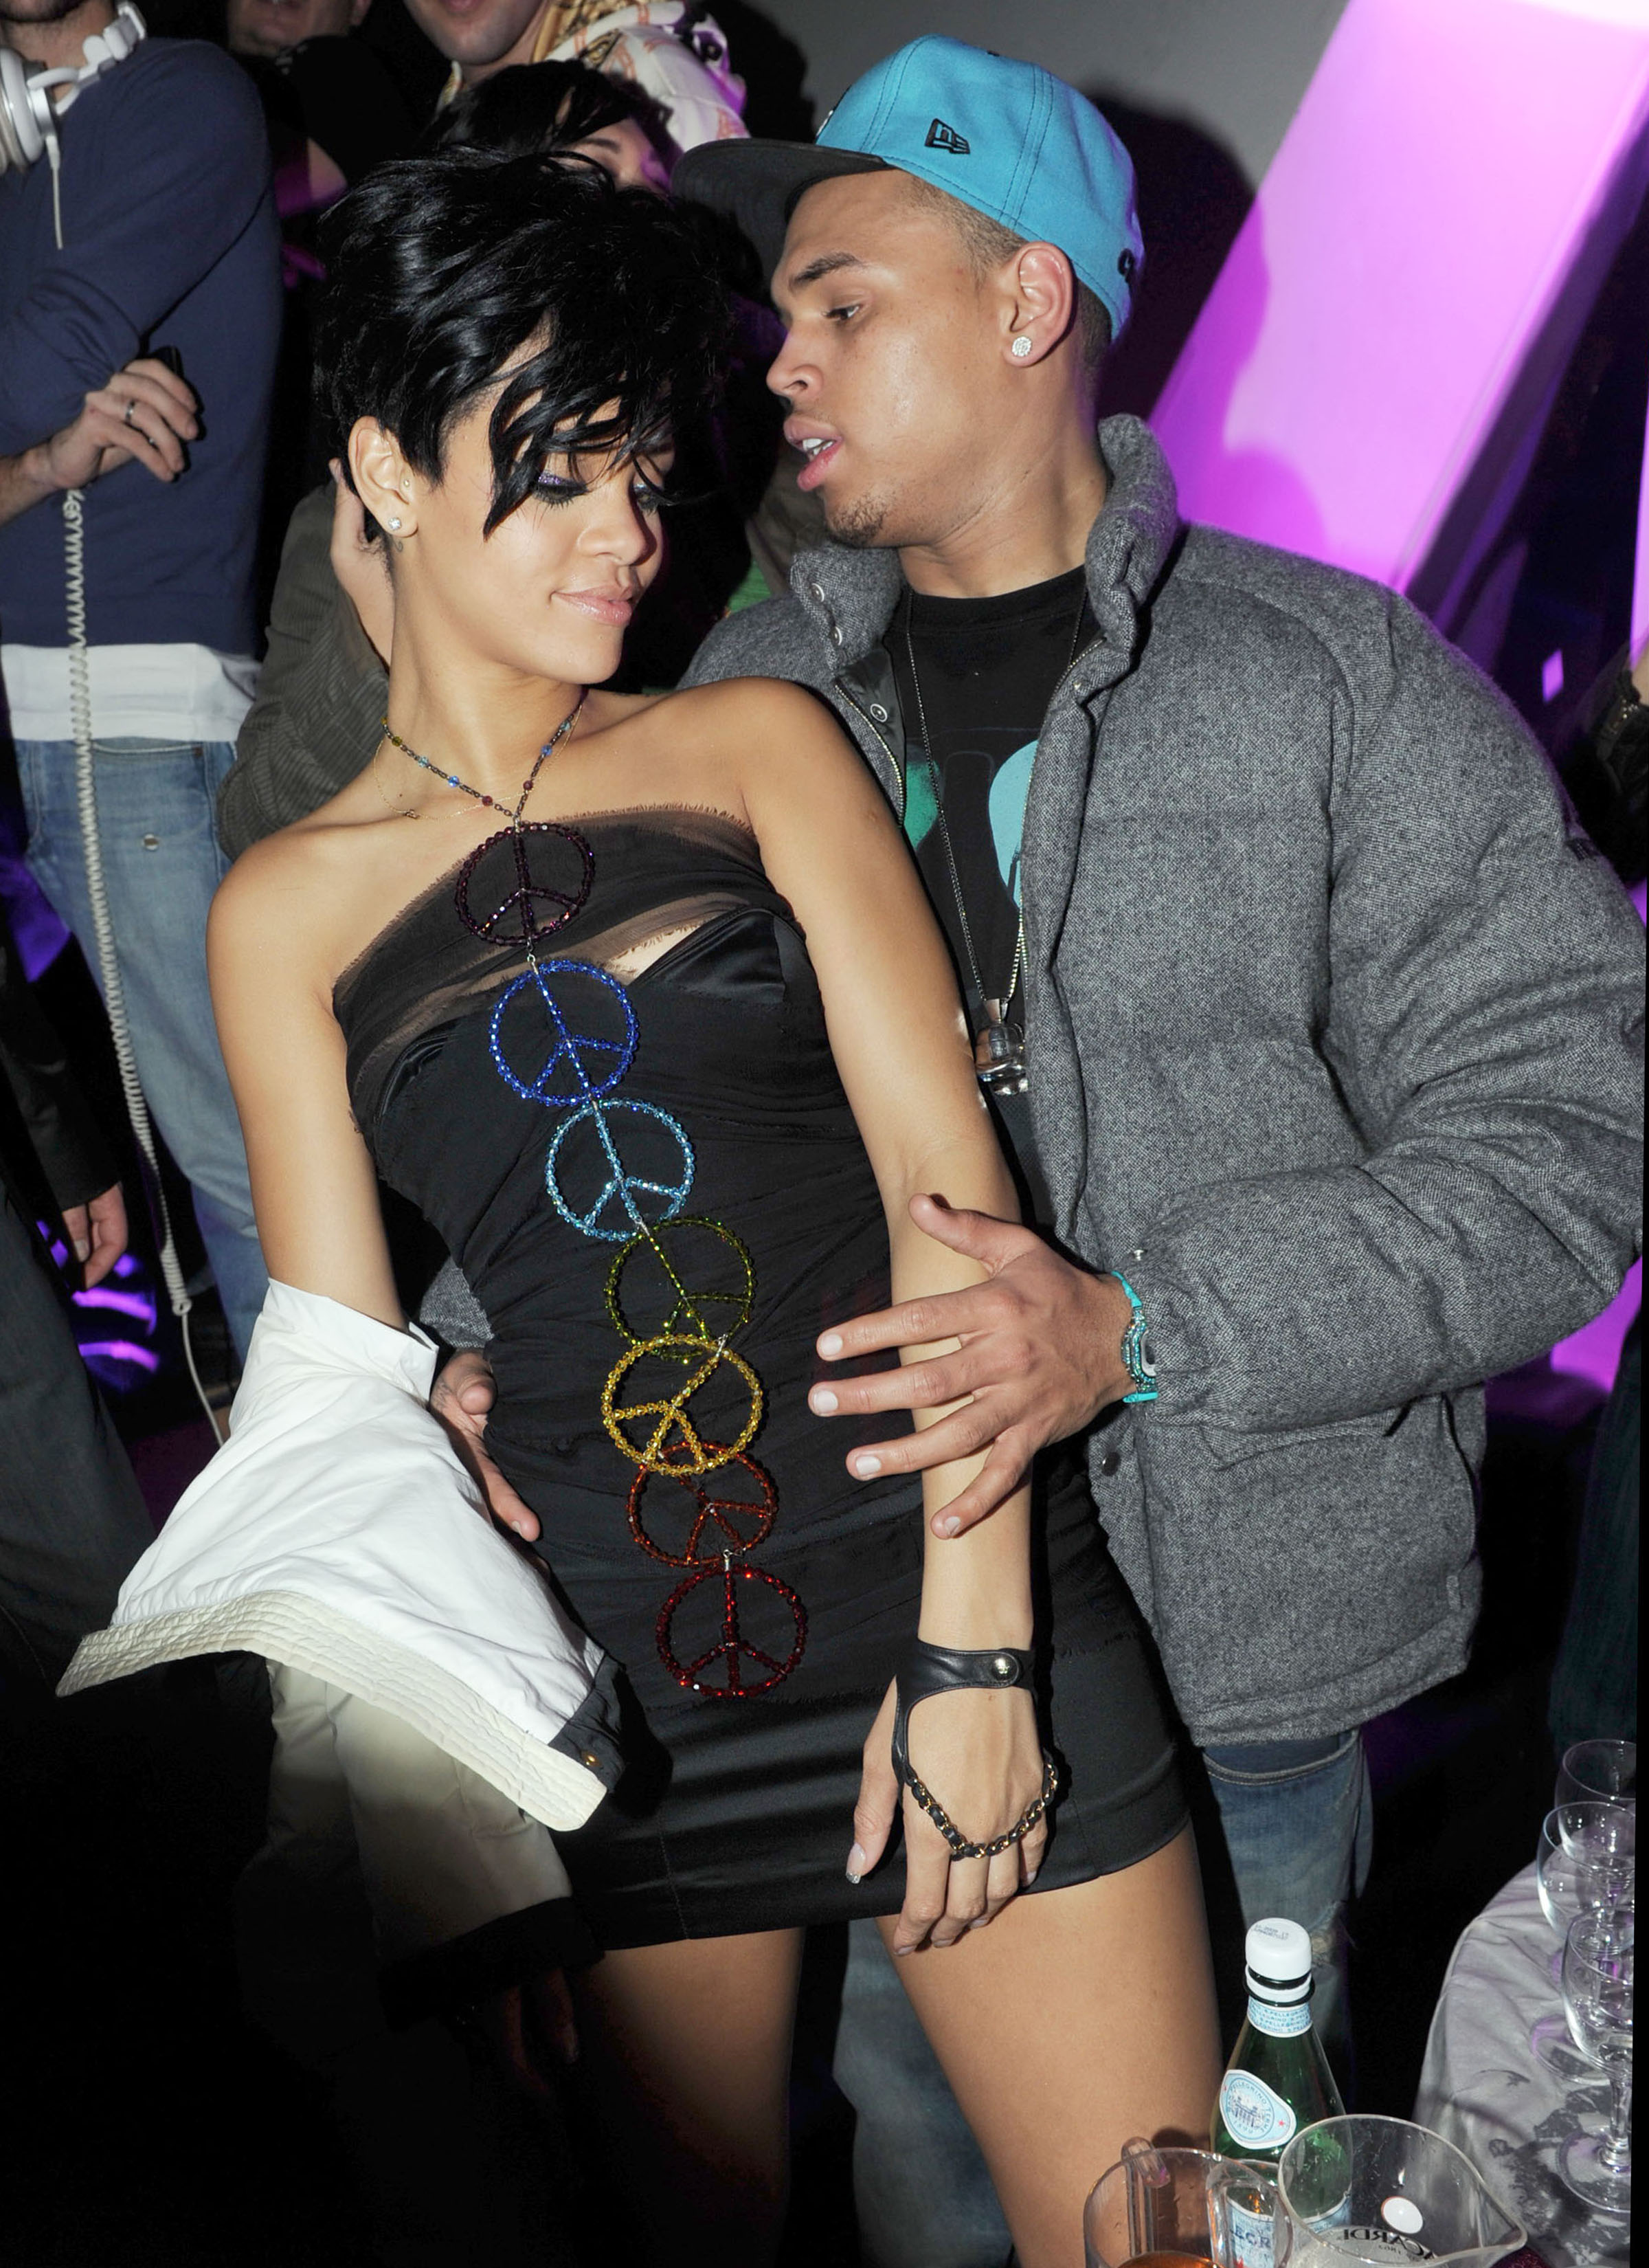 chris brown rihanna pictures leaked. Chris Brown Ogles Rihanna